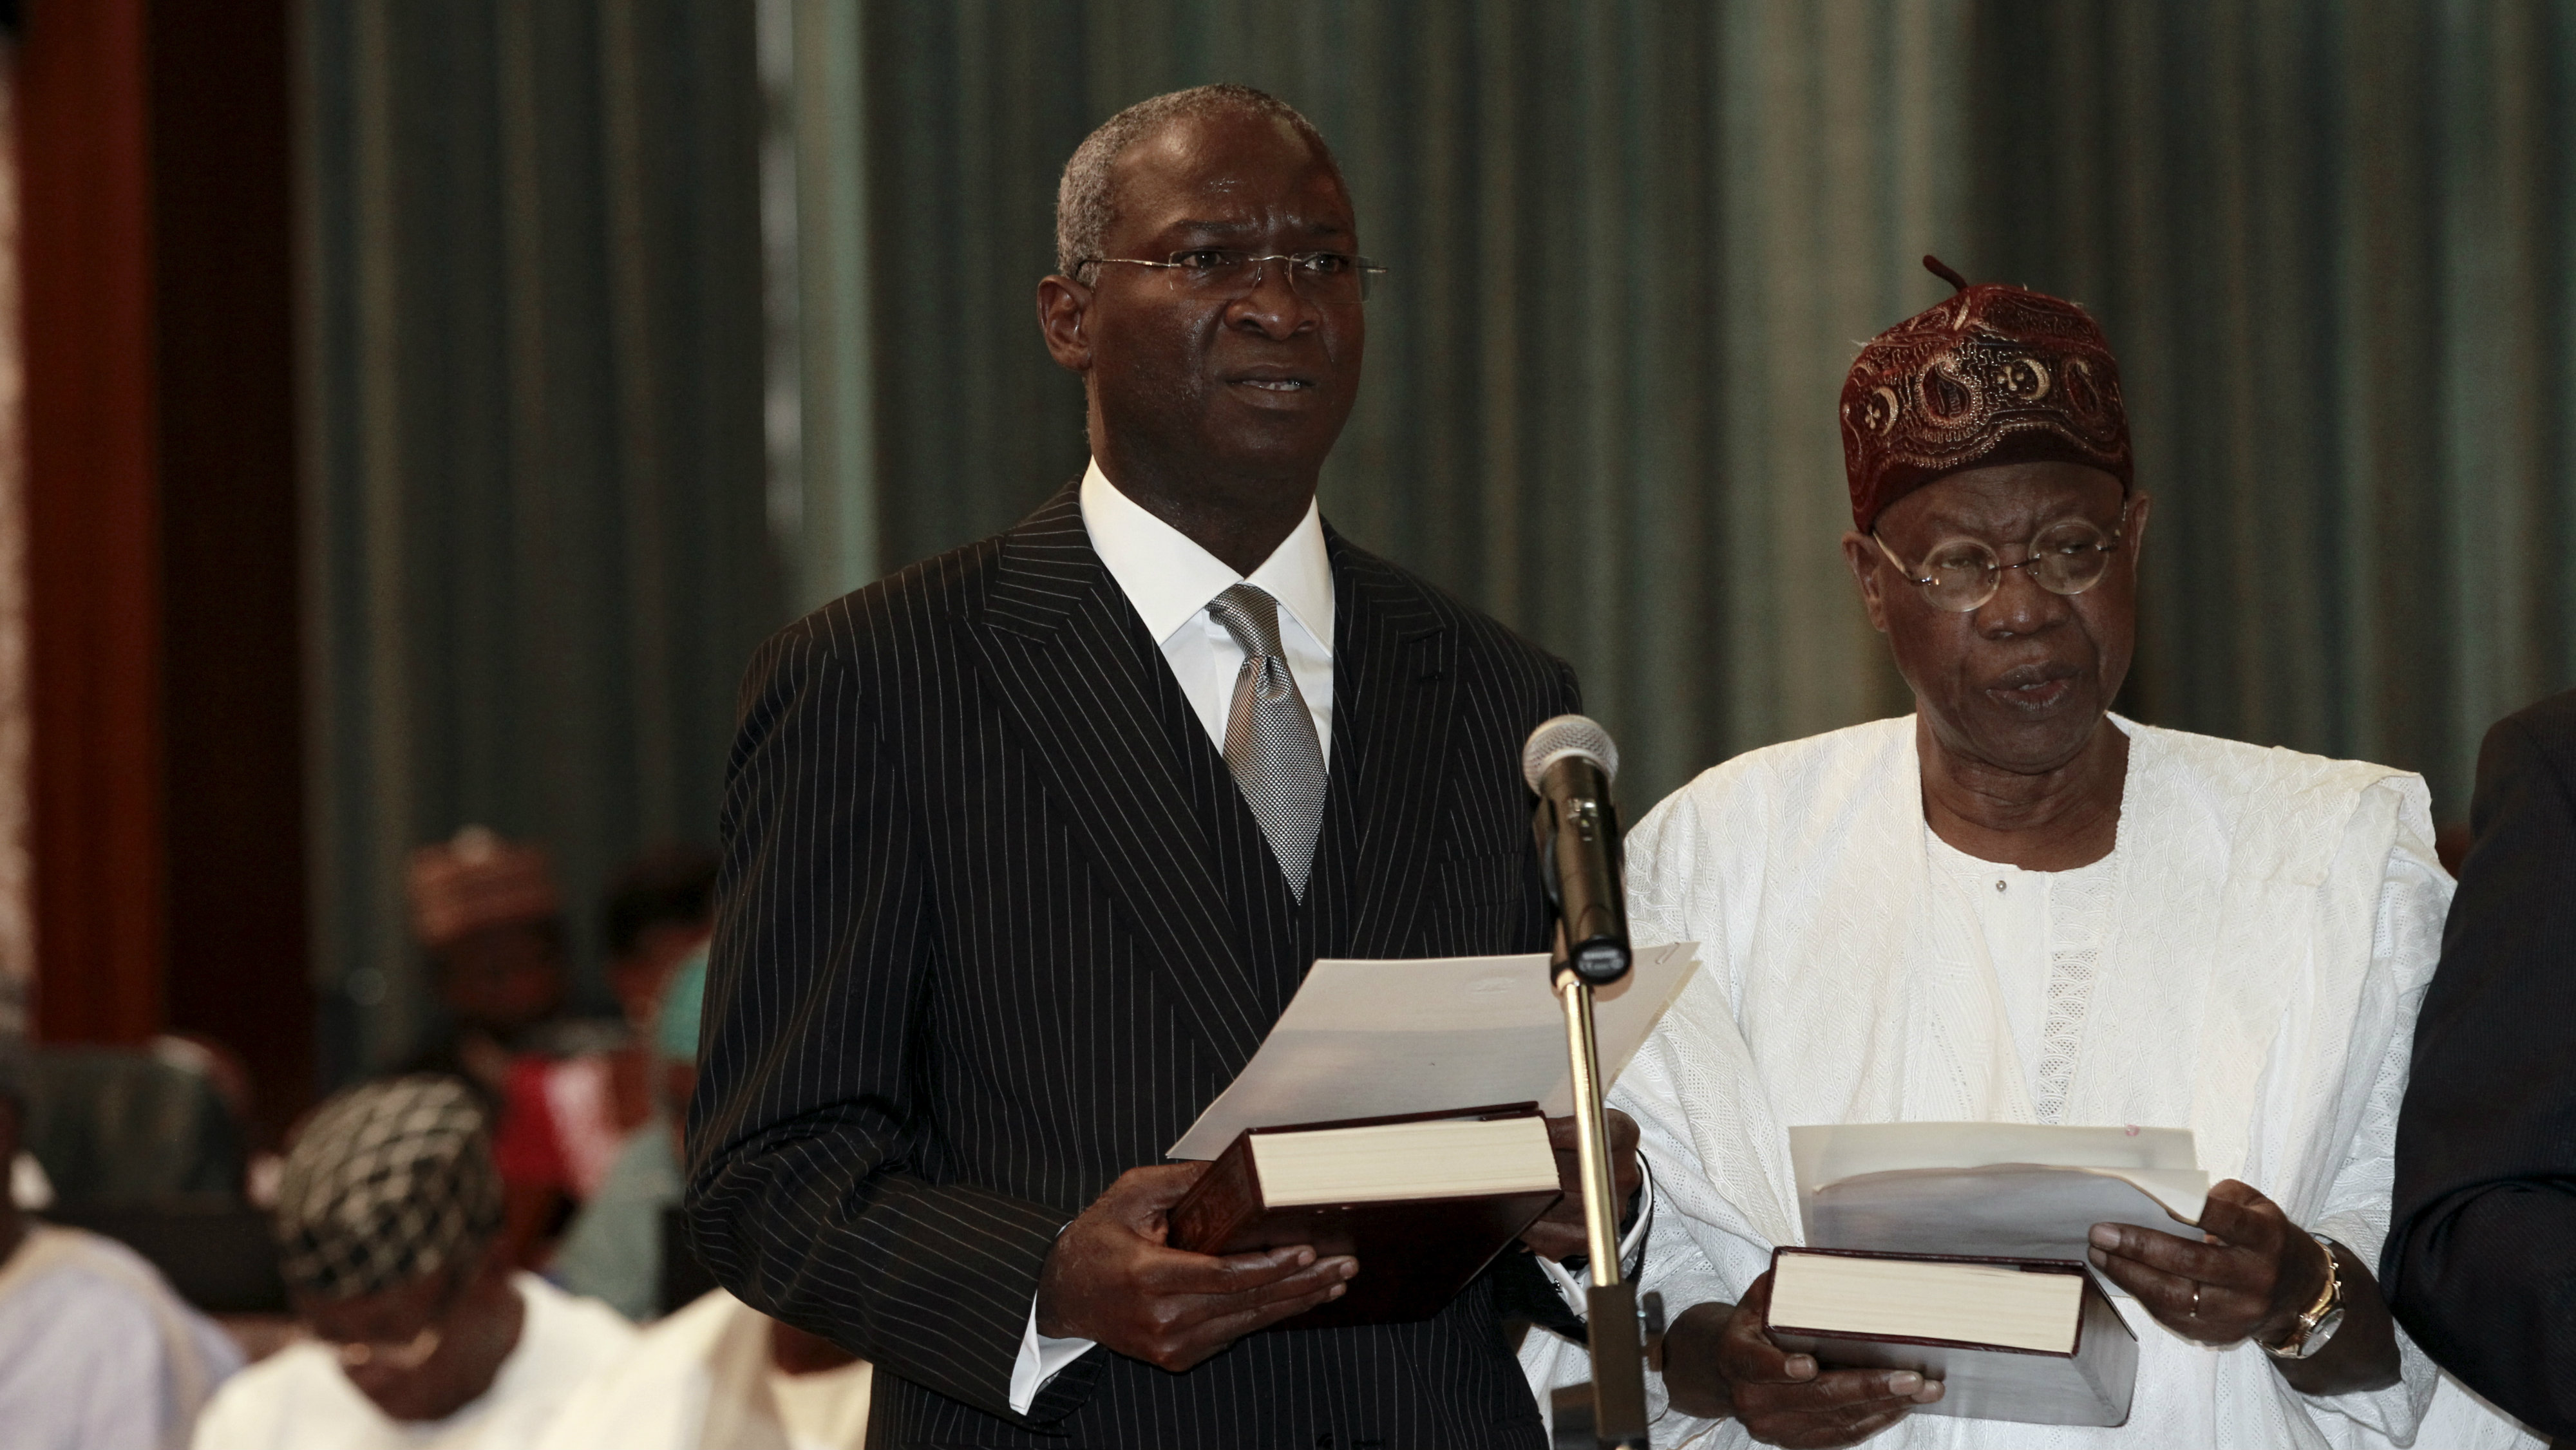 Nigeria's new Power, Works and Housing Minister Babatunde Fashola (front L) and new Information Minister Lai Mohammed take their oath of office during the swearing-in ceremony in Abuja, Nigeria November 11, 2015. Nigeria's President Muhammadu Buhari swore 36 ministers into his cabinet on Wednesday, five months after his inauguration. Buhari won March elections after vowing to crack down on corruption in Africa's biggest economy and top oil producer. He has been criticised for waiting until September to name his ministers at a time when the economy has been hammered by the fall in oil prices. REUTERS/Afolabi Sotunde